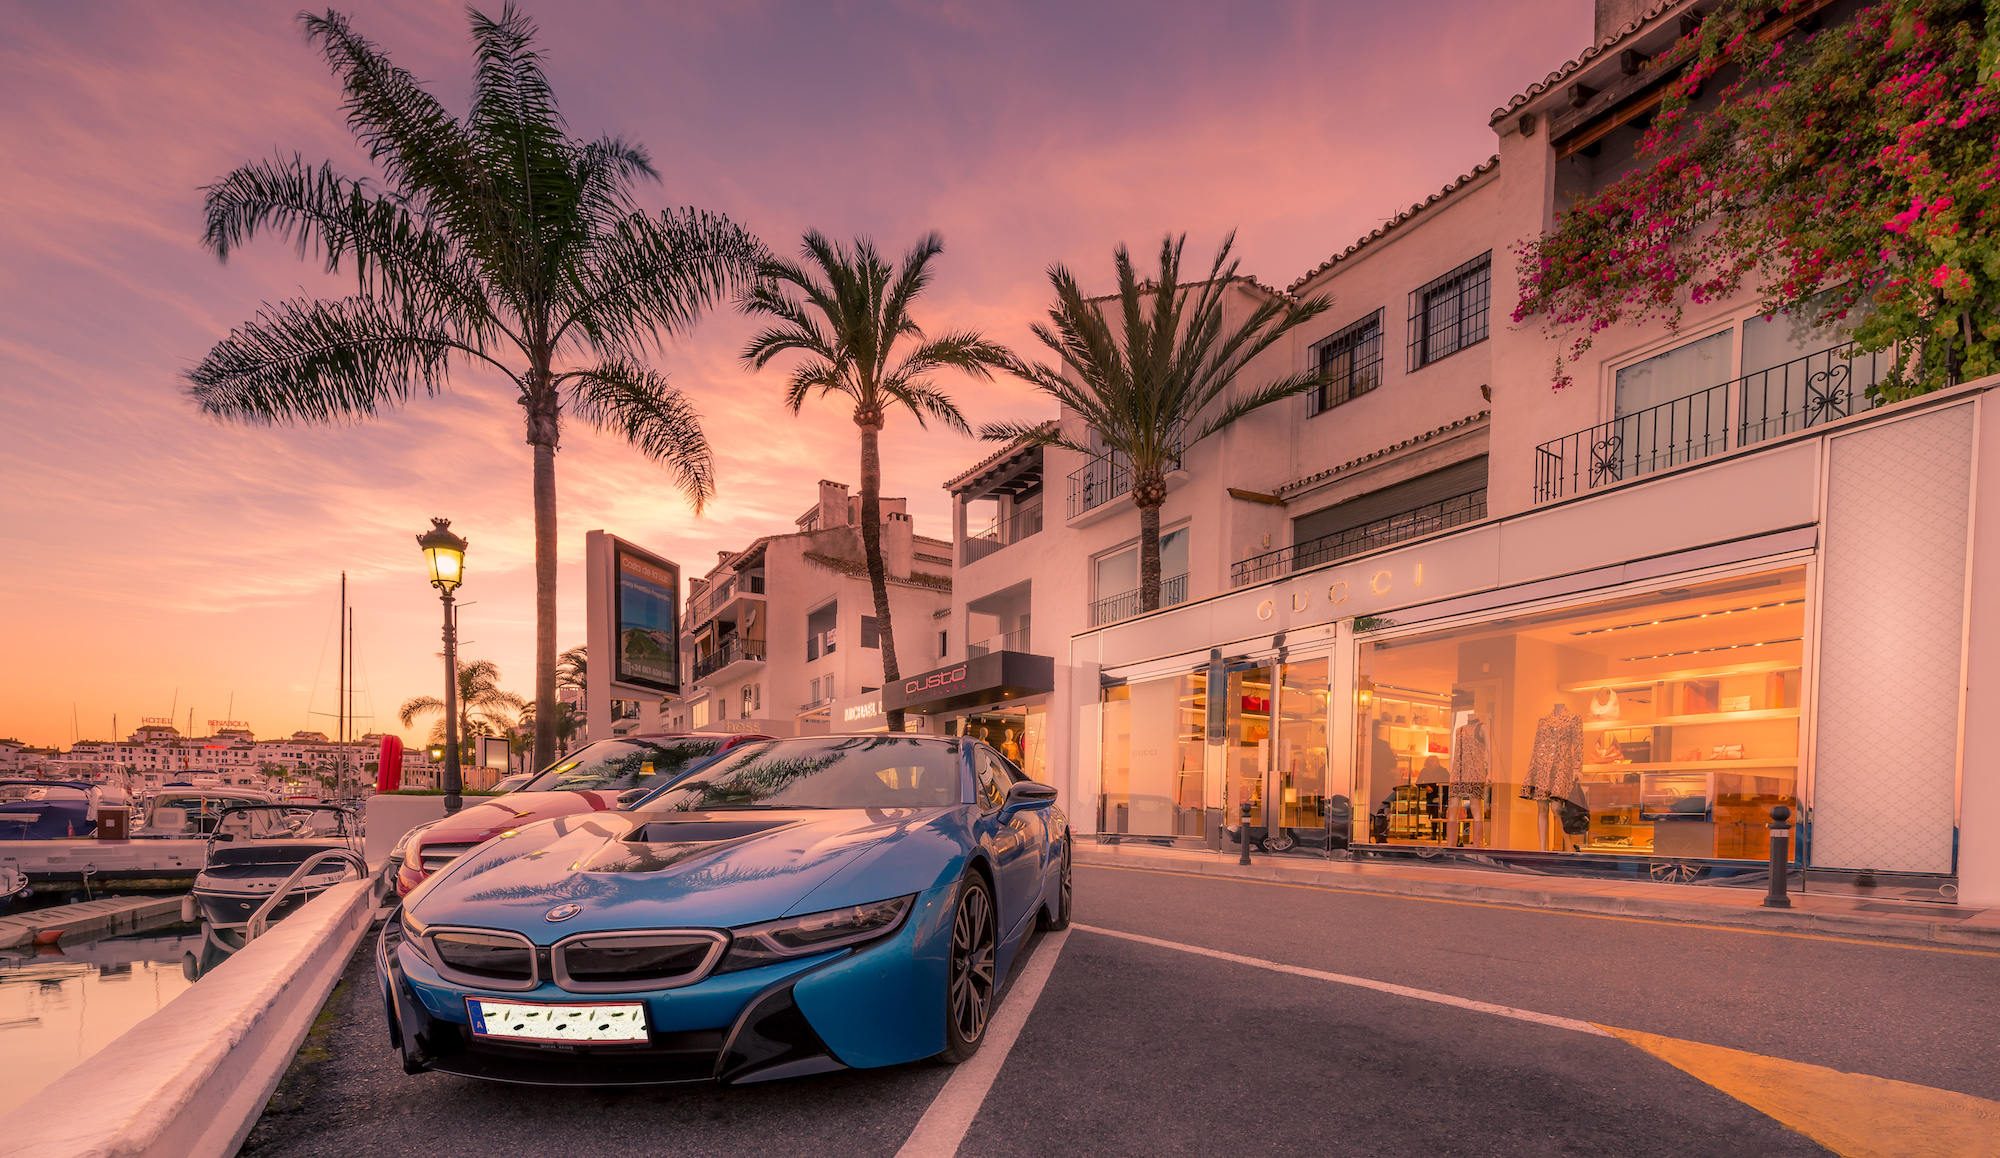 Big brands luxury shopping in Marbella